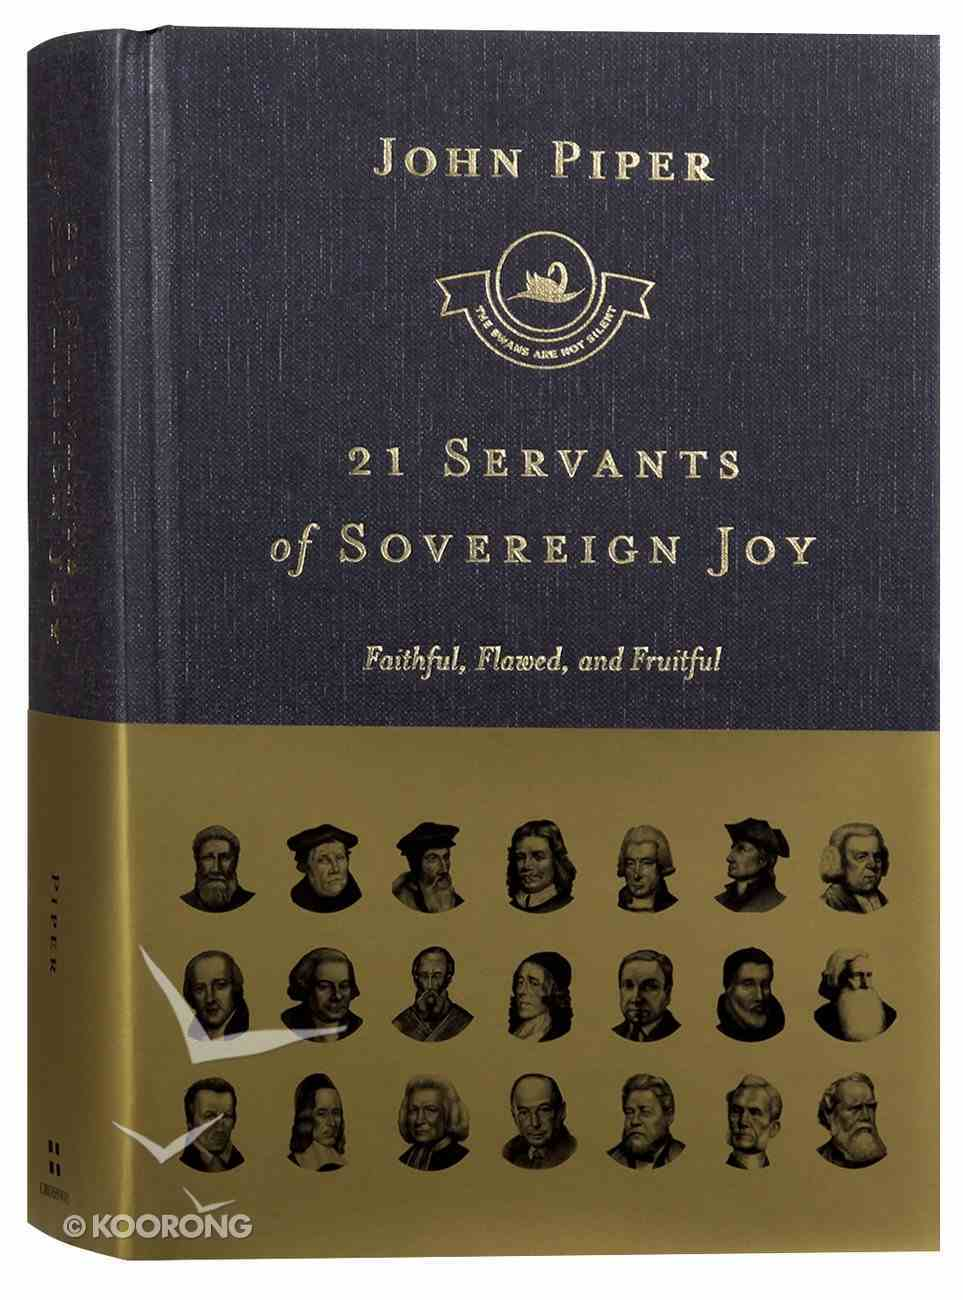 21 Servants of Sovereign Joy - Faithful, Flawed and Fruitful (Swans Are Not Silent Series) Hardback